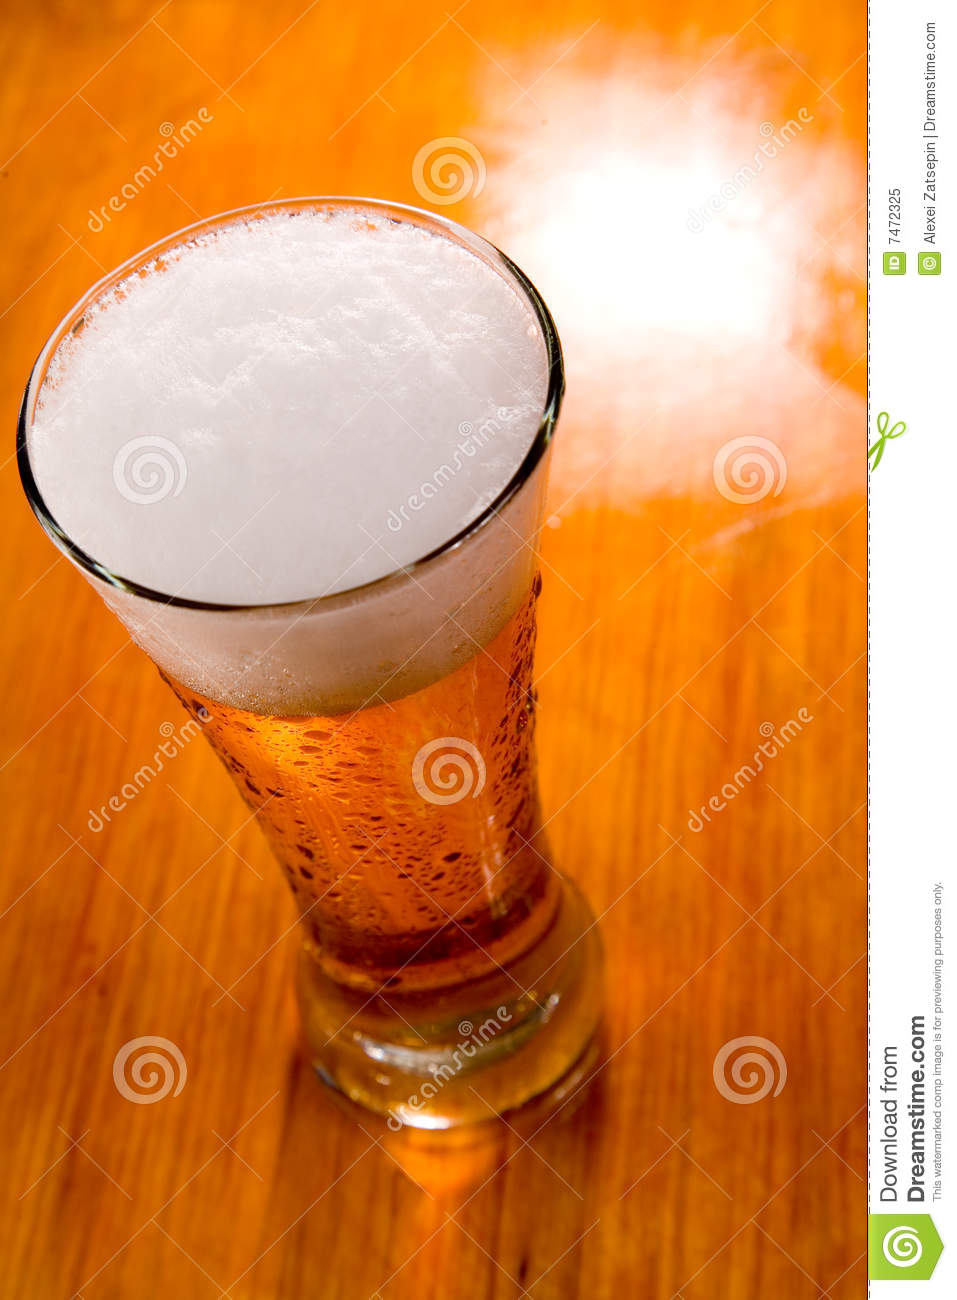 glass beer on wood - photo #10